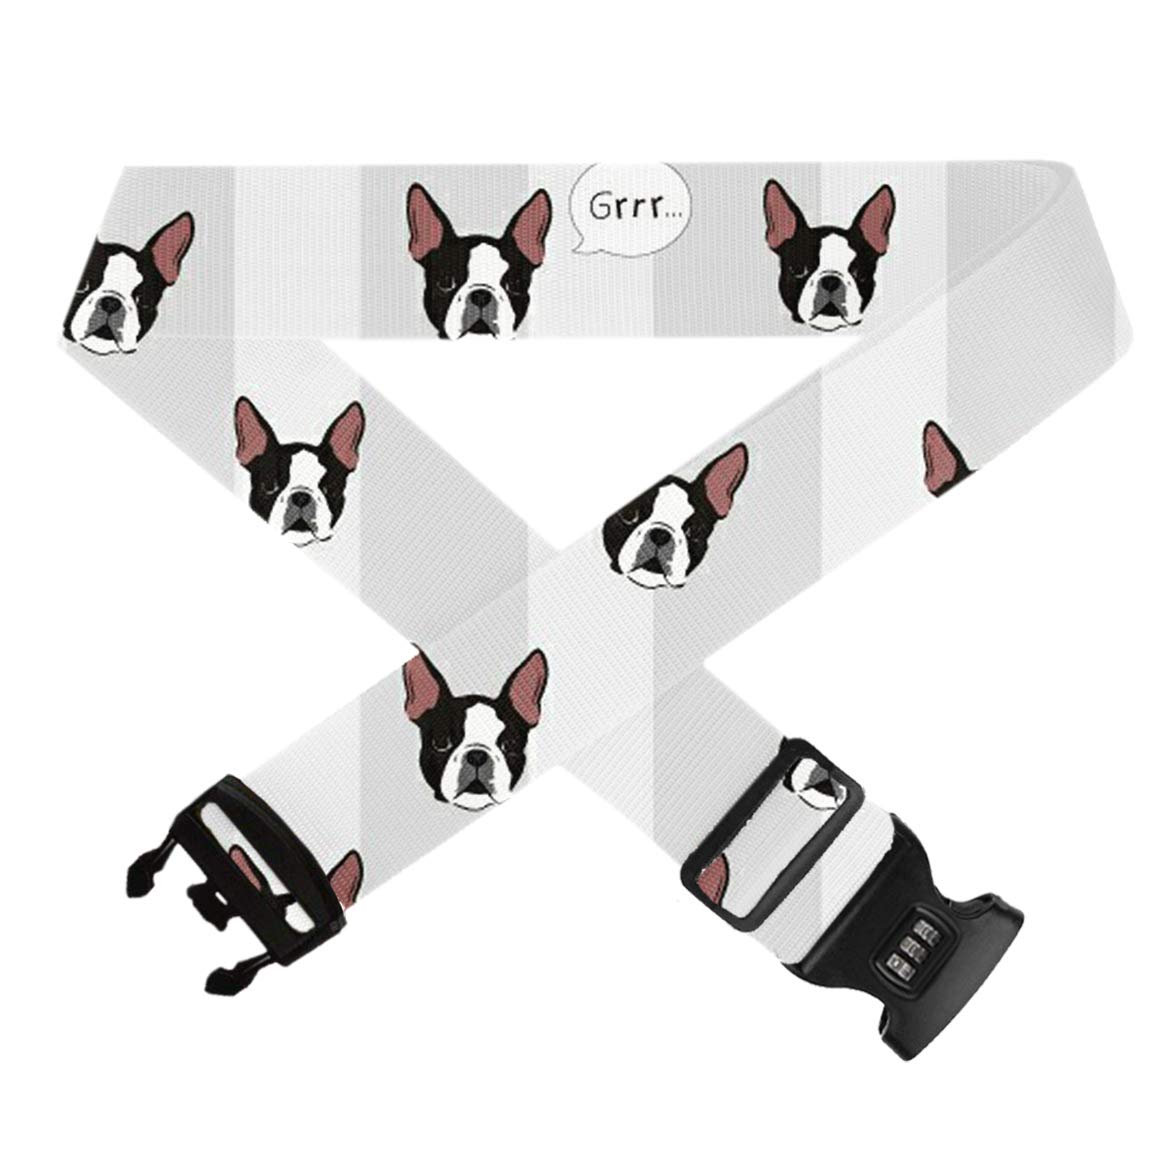 1 Pack Luggage Straps Bag Adjustable Belt Fashion Durable Travel Bag Accessories GLORY ART Suitcase Straps Funny Winer Dog Head